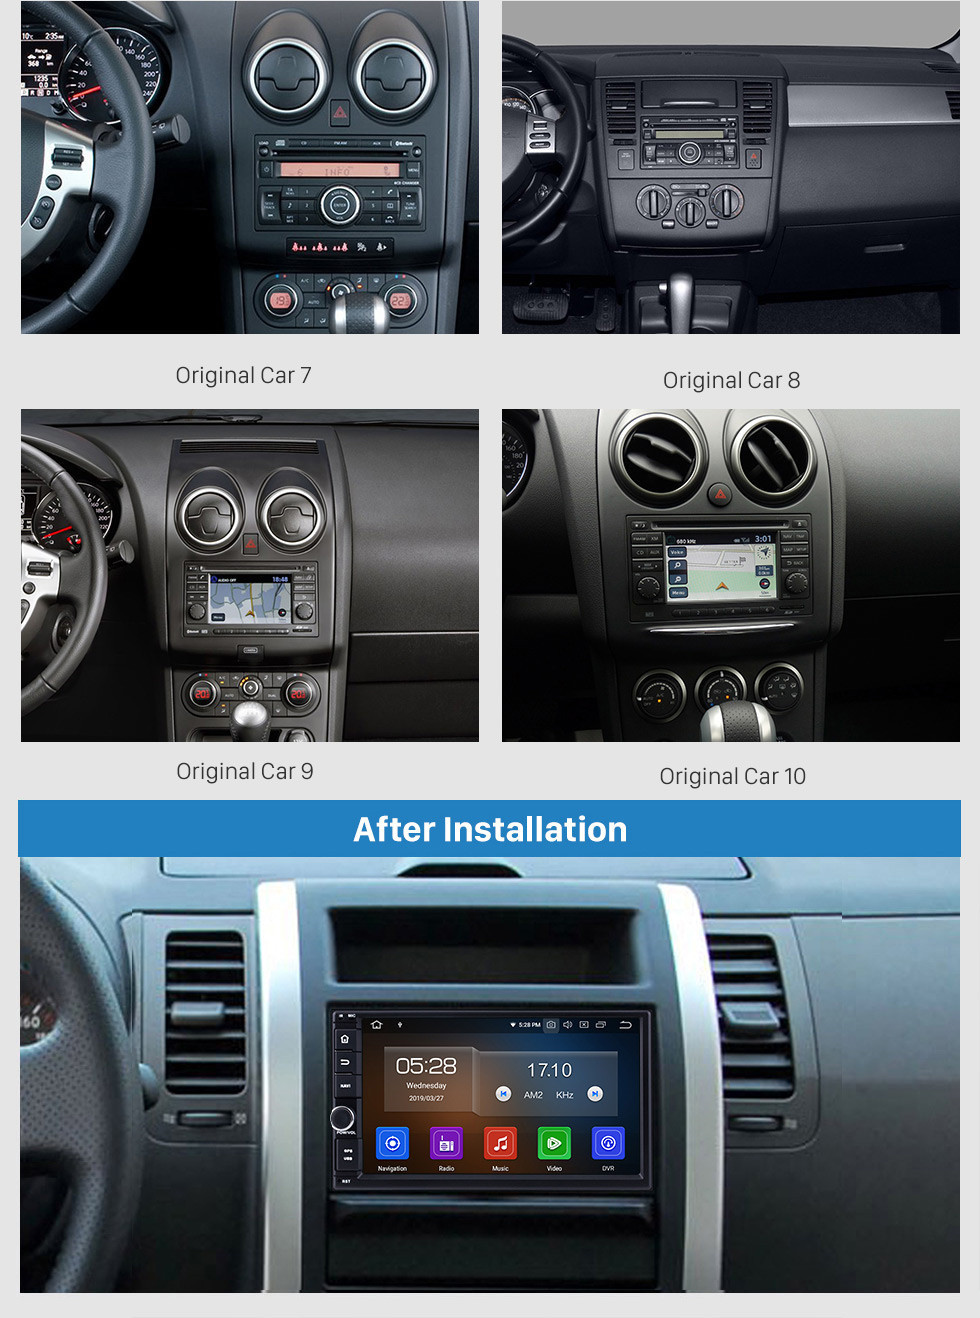 Seicane OEM Android 10.0 2005-2010 Kia optima magentis lotze Radio Upgrade with Aftermarket GPS Navigation DVD Player Car Stereo  Touch Screen WiFi 3G Bluetooth OBD2 AUX Mirror Link Backup Camera